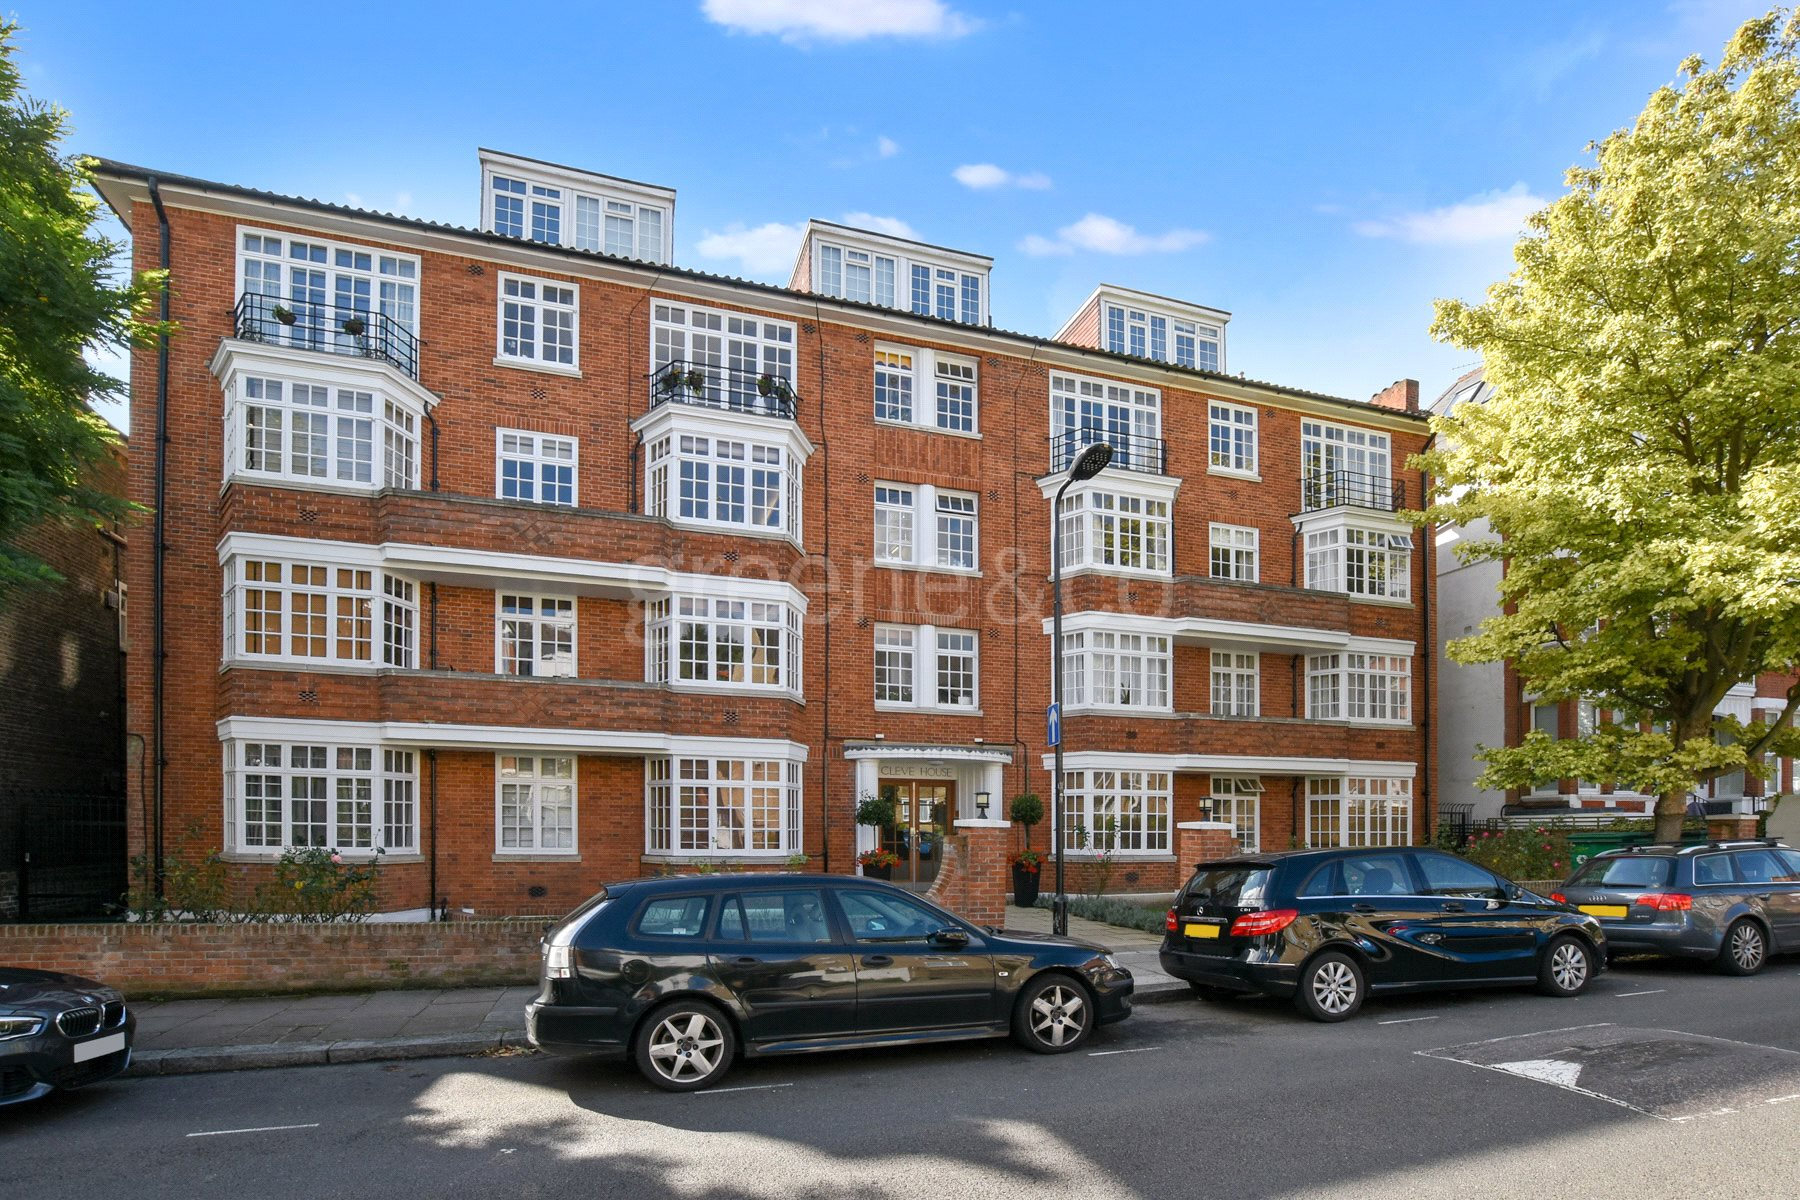 2 Bedrooms Flat for sale in Cleve House, Cleve Road, South Hampstead, London, NW6